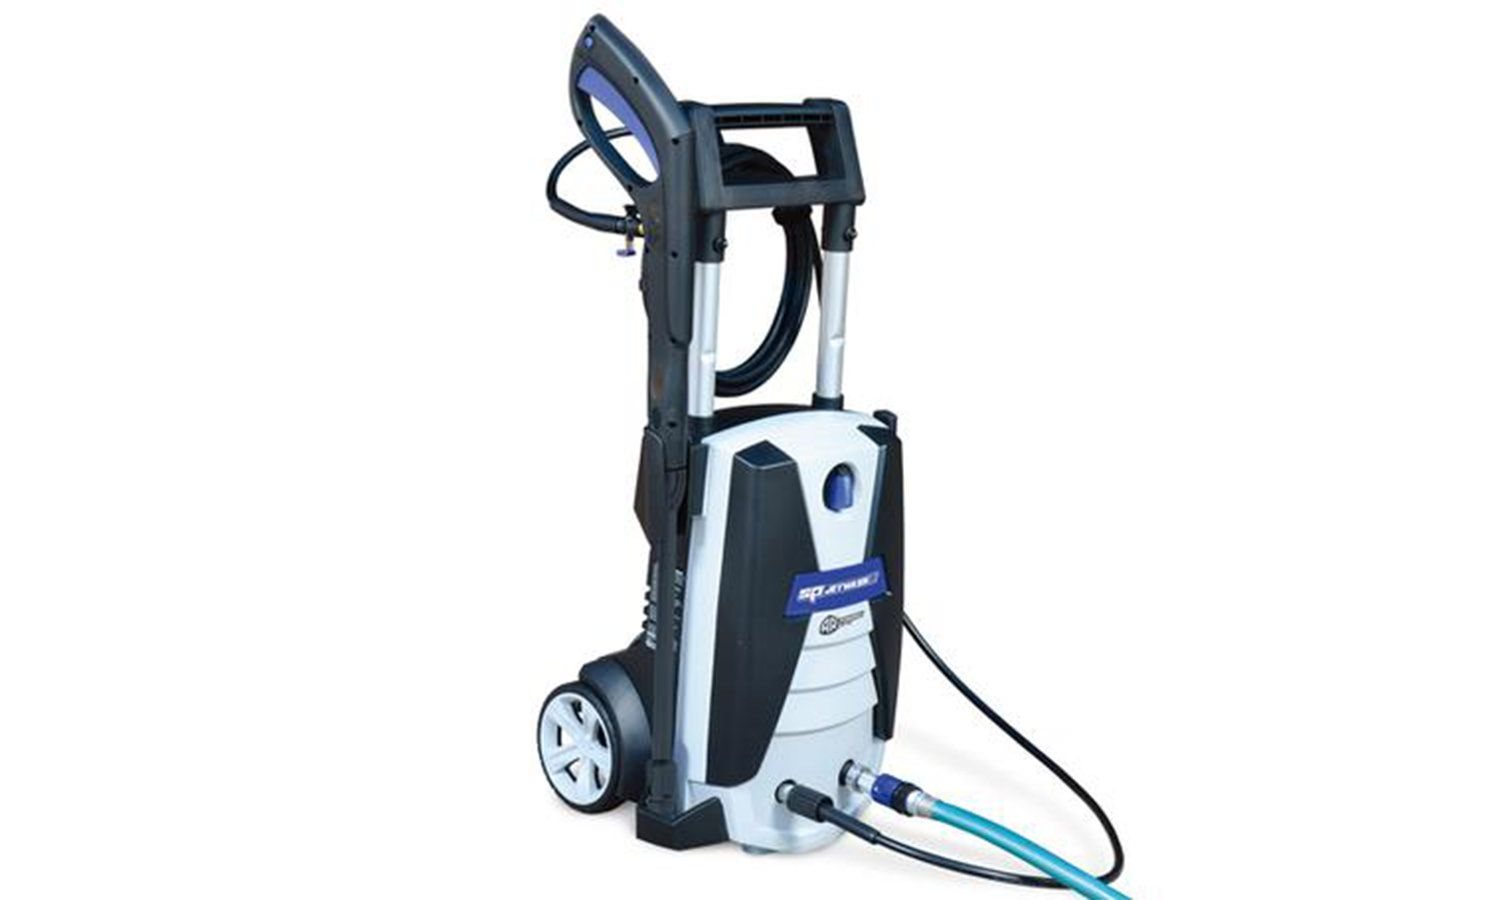 SP Tools Electric Pressure Washer